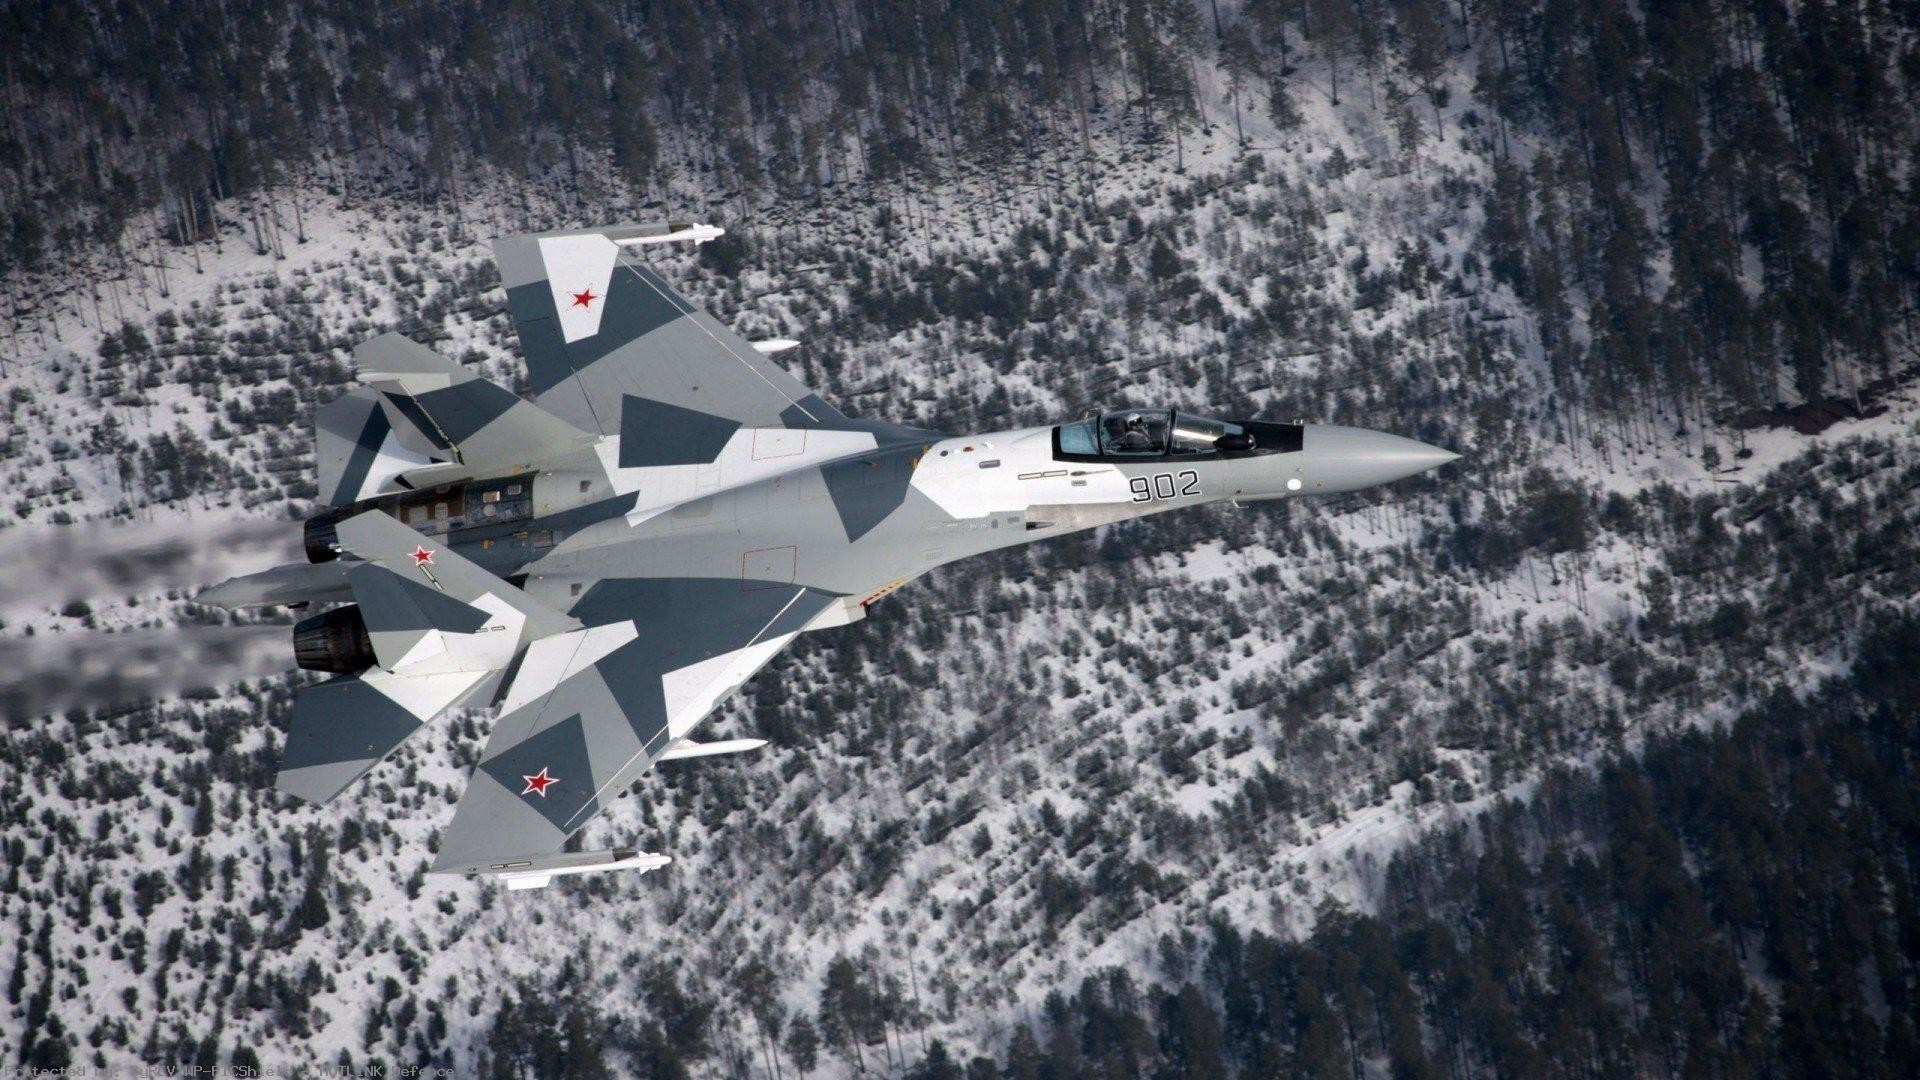 Sukhoi-T-Fighter-Jet-military-airplane-plane-stealth-